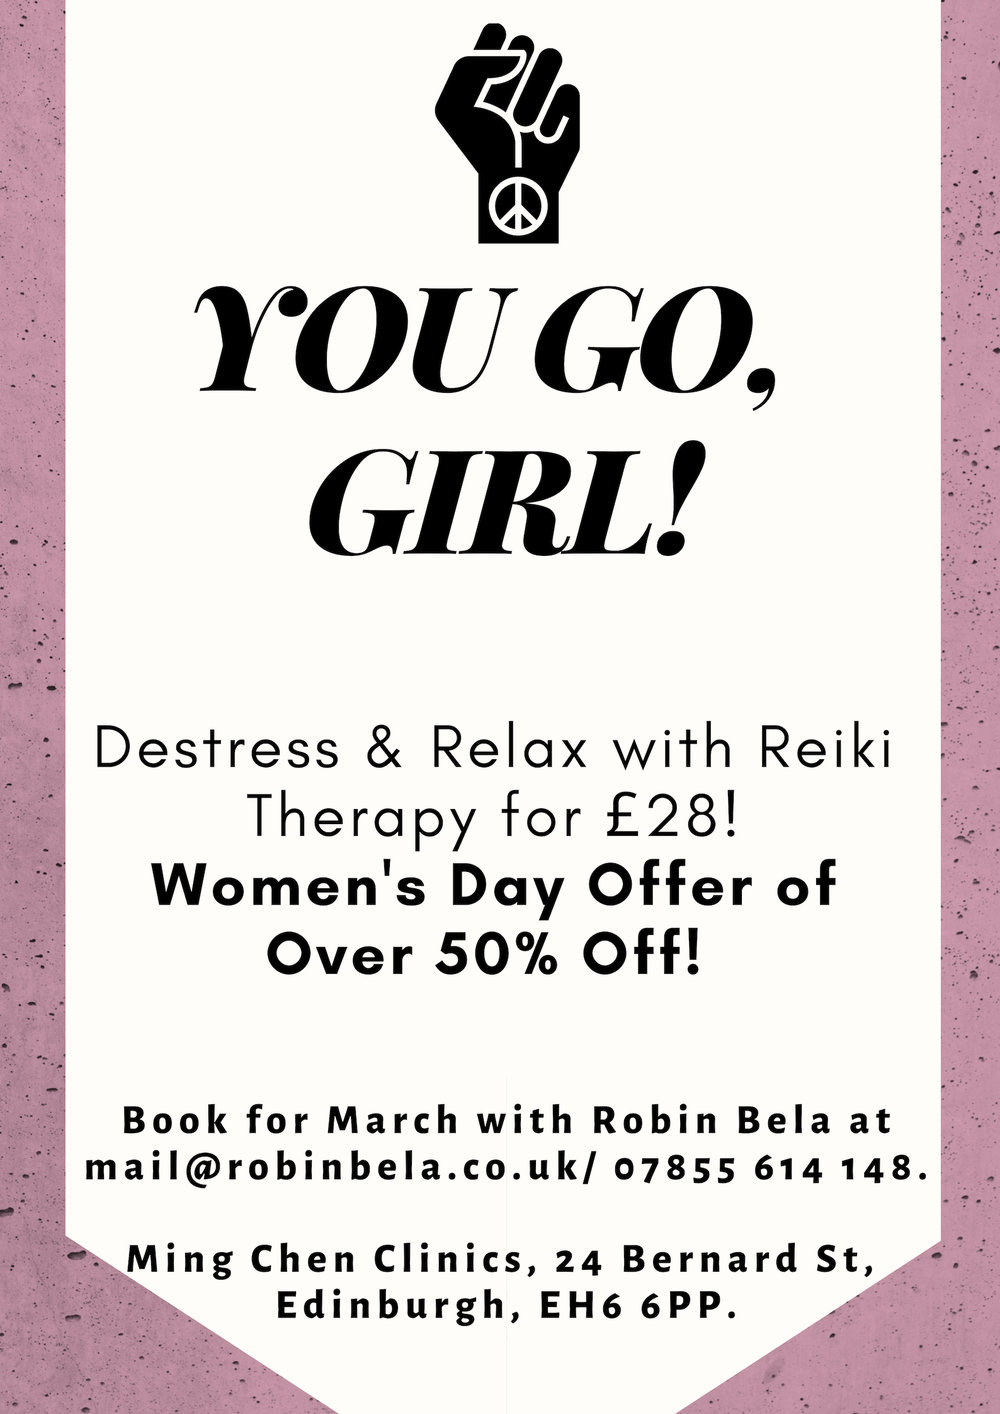 Robin's Women's Day Ad.jpg